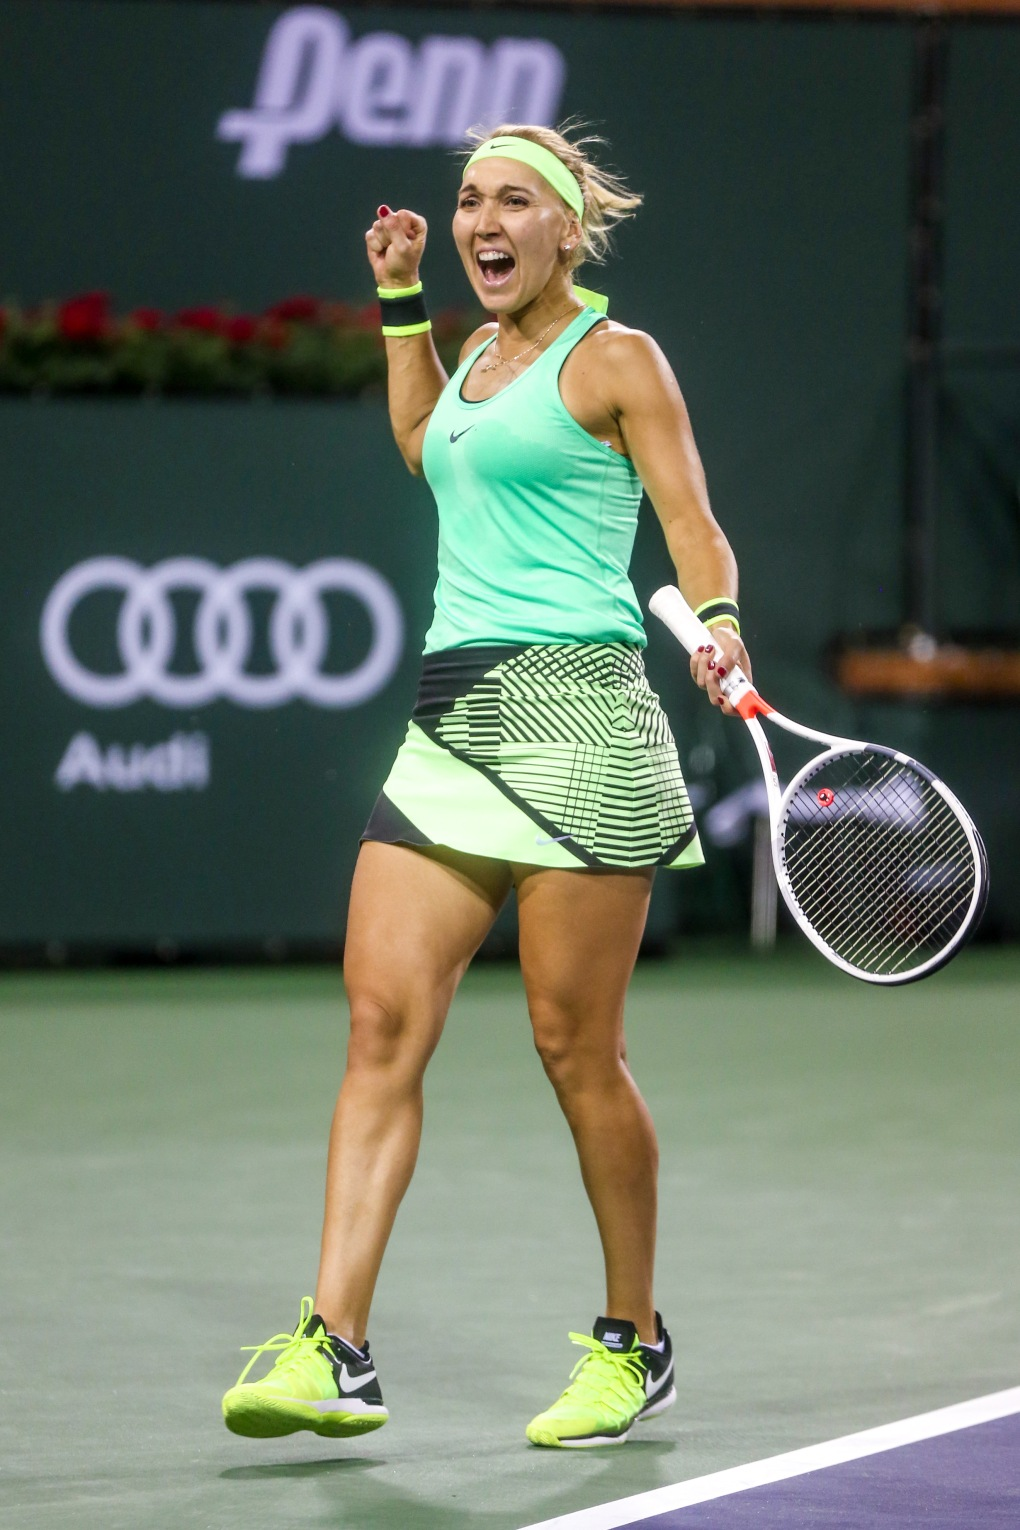 Elena Vesnina reacts after winning the semi-final match against Kristina Mladenovic at the Indian Wells Tennis Garden in Indian Wells, California on Friday, March 17, 2017. (Photo by Billie Weiss/BNP Paribas Open)